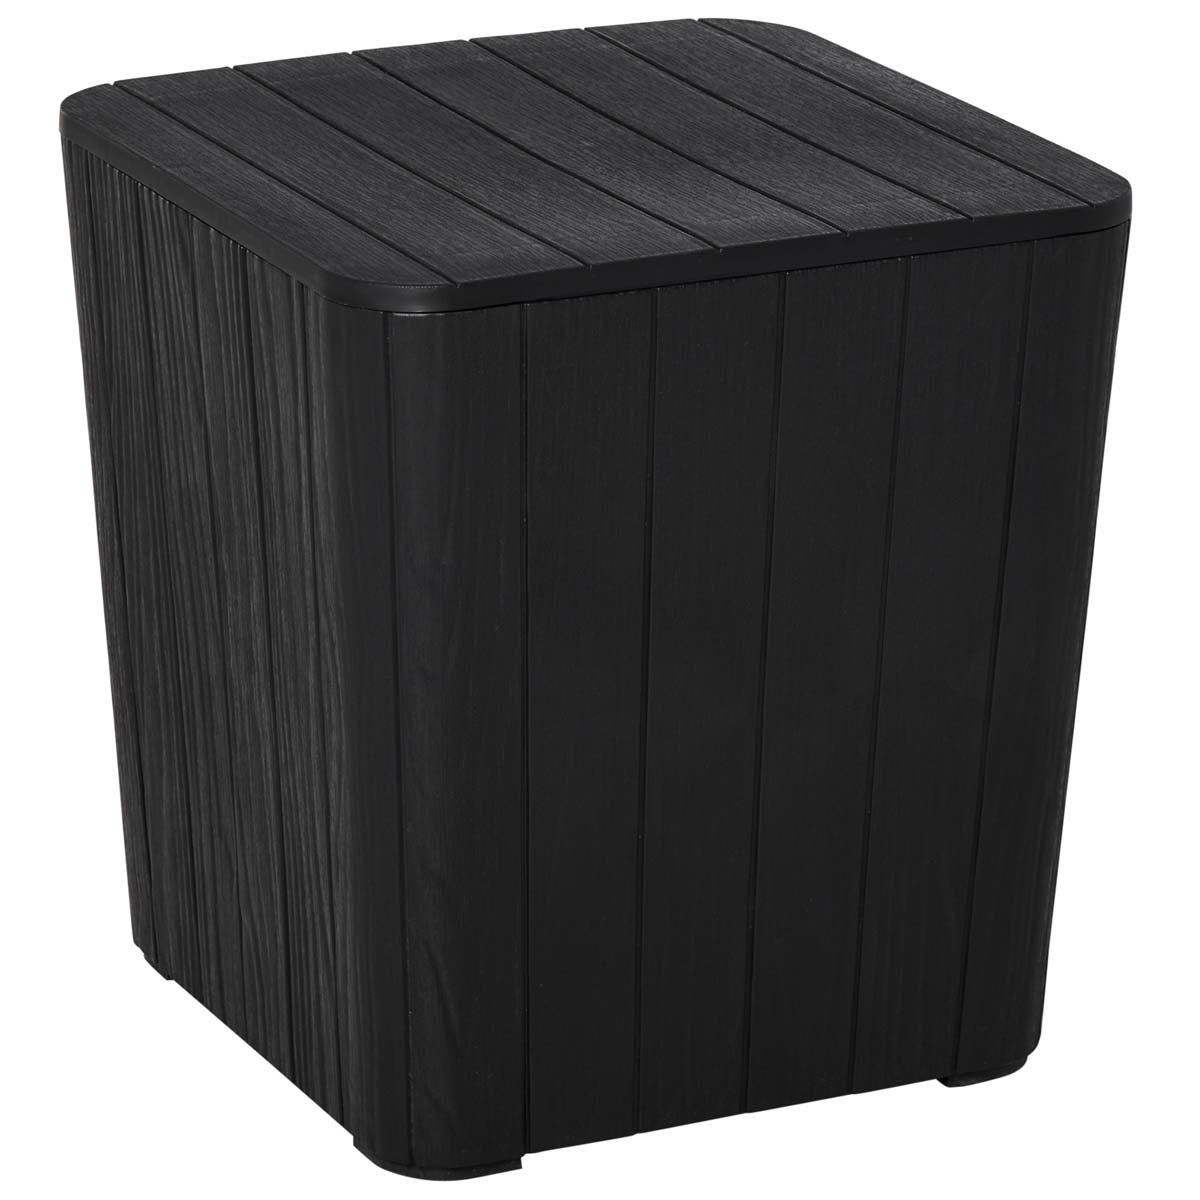 Outsunny 50L Wood Effect Storage Box Table - Black